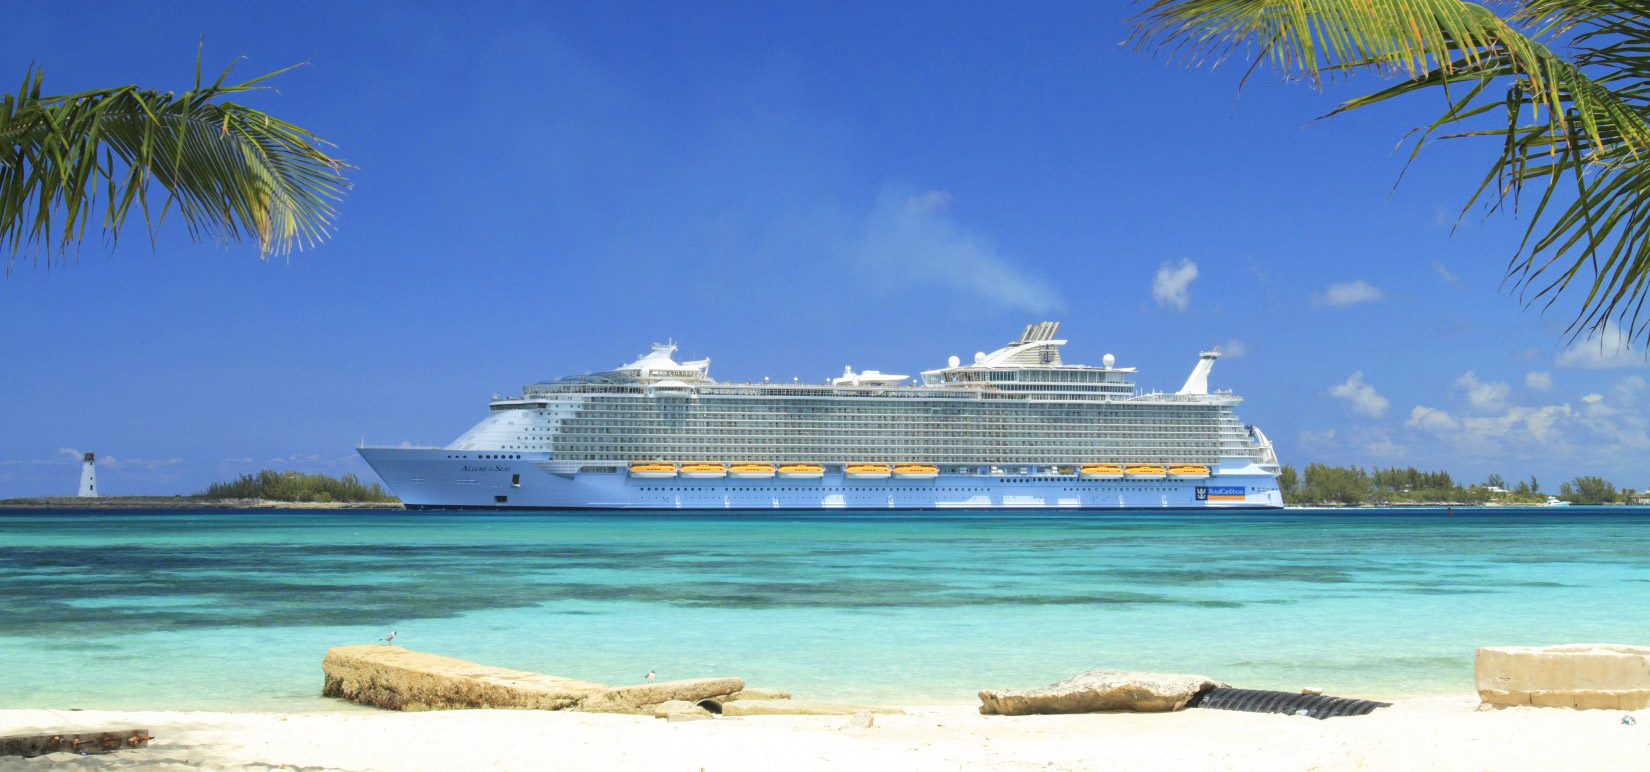 Royal Caribbean Exotic Fly Cruise Holidays